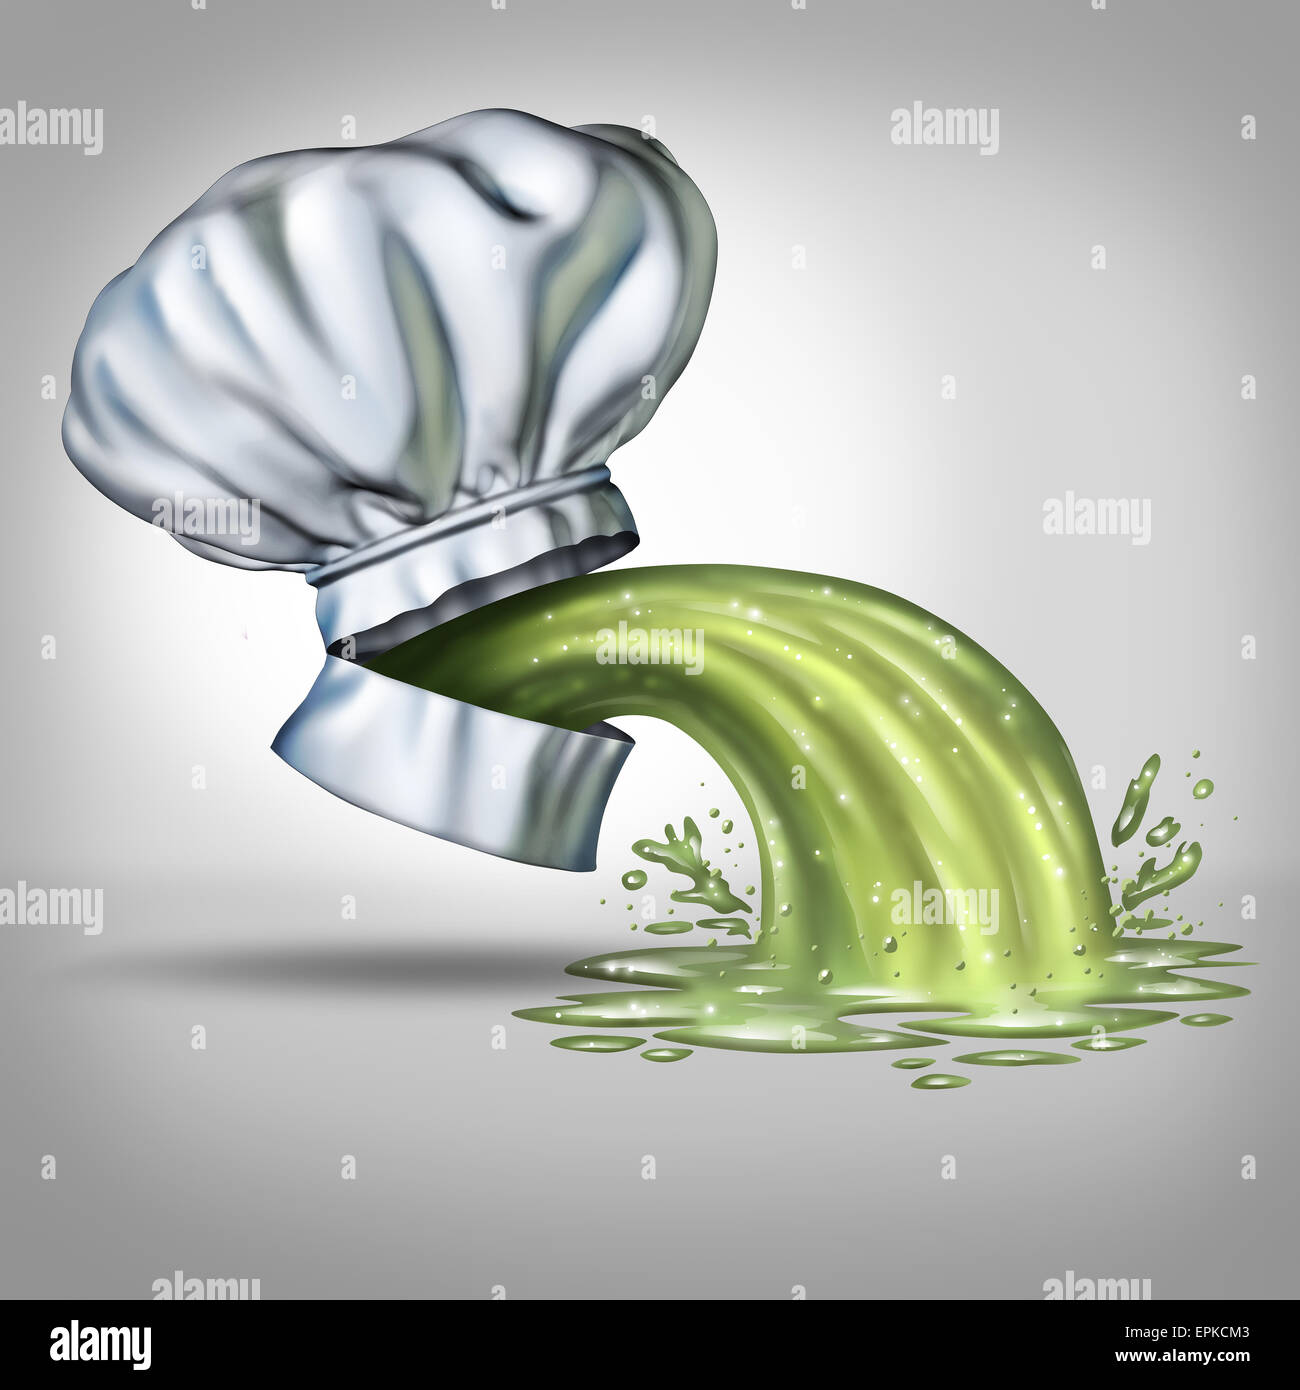 Food poisoning concept and foodborne illness as a chef hat with an open mouth with vomit projecting outwards as - Stock Image